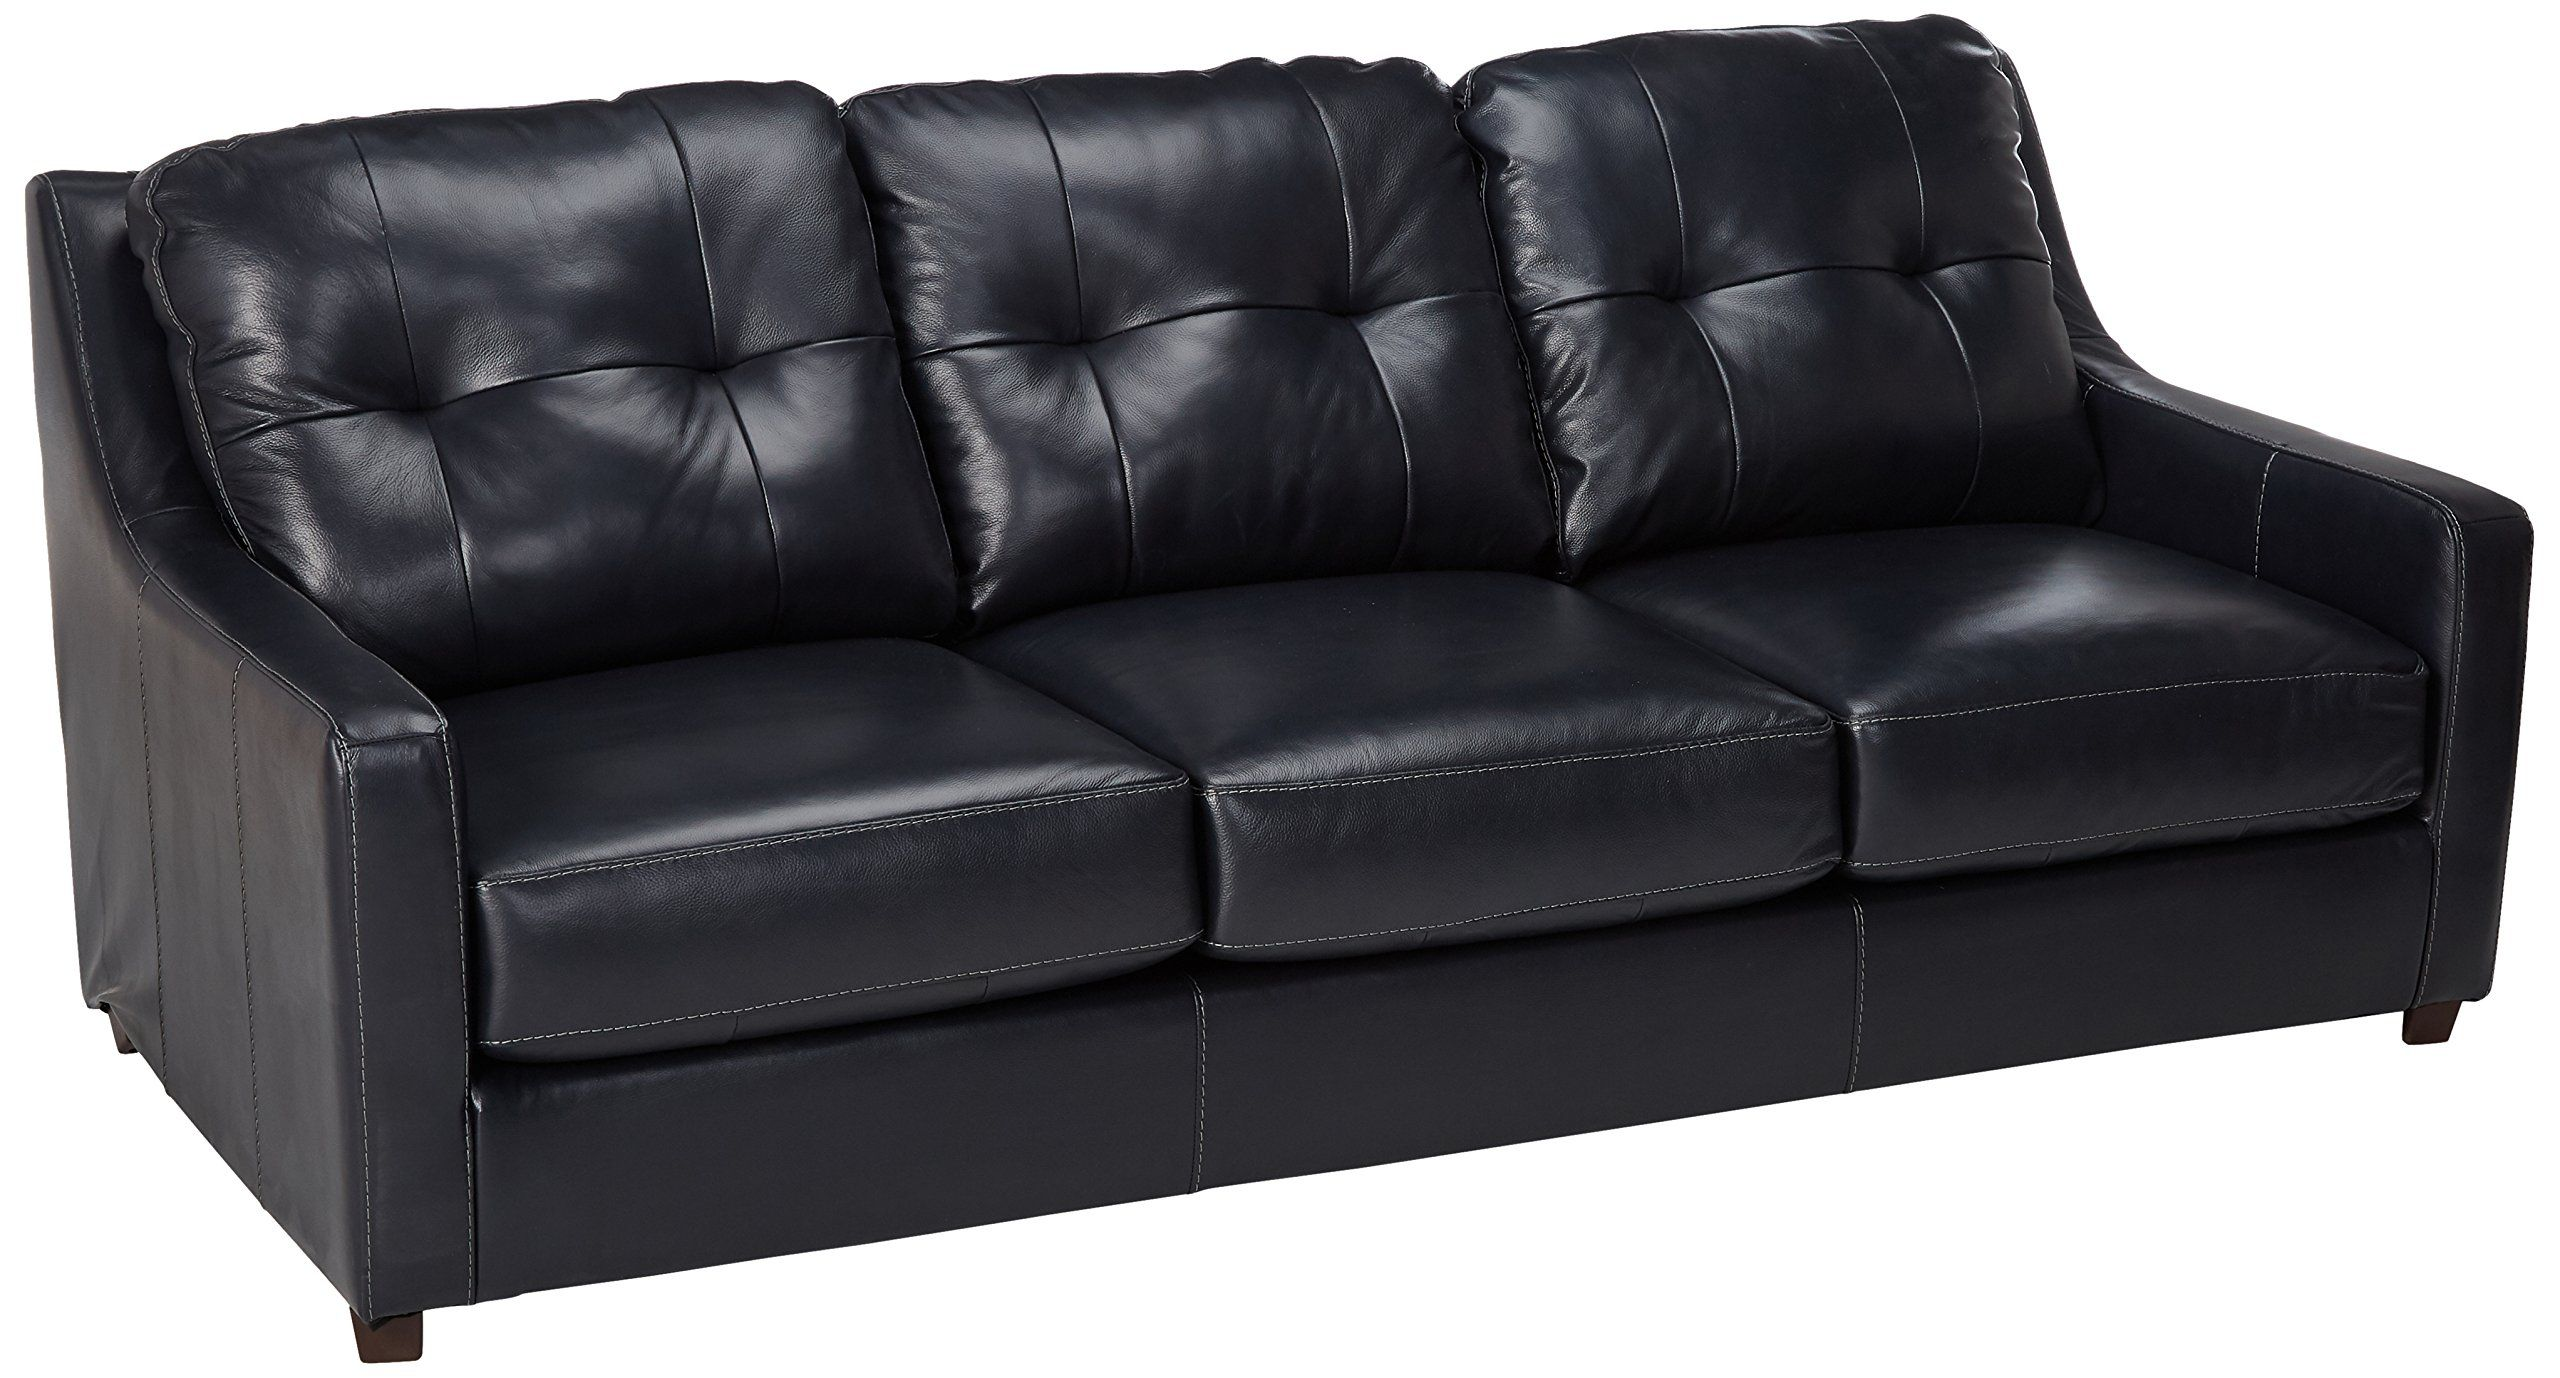 Ashley Furniture Signature Design Okean Upholstered Leather Queen Sleeper Sofas Contemporary Navy Ashley Furniture Living Room Couch Decor Deep Seated Couch